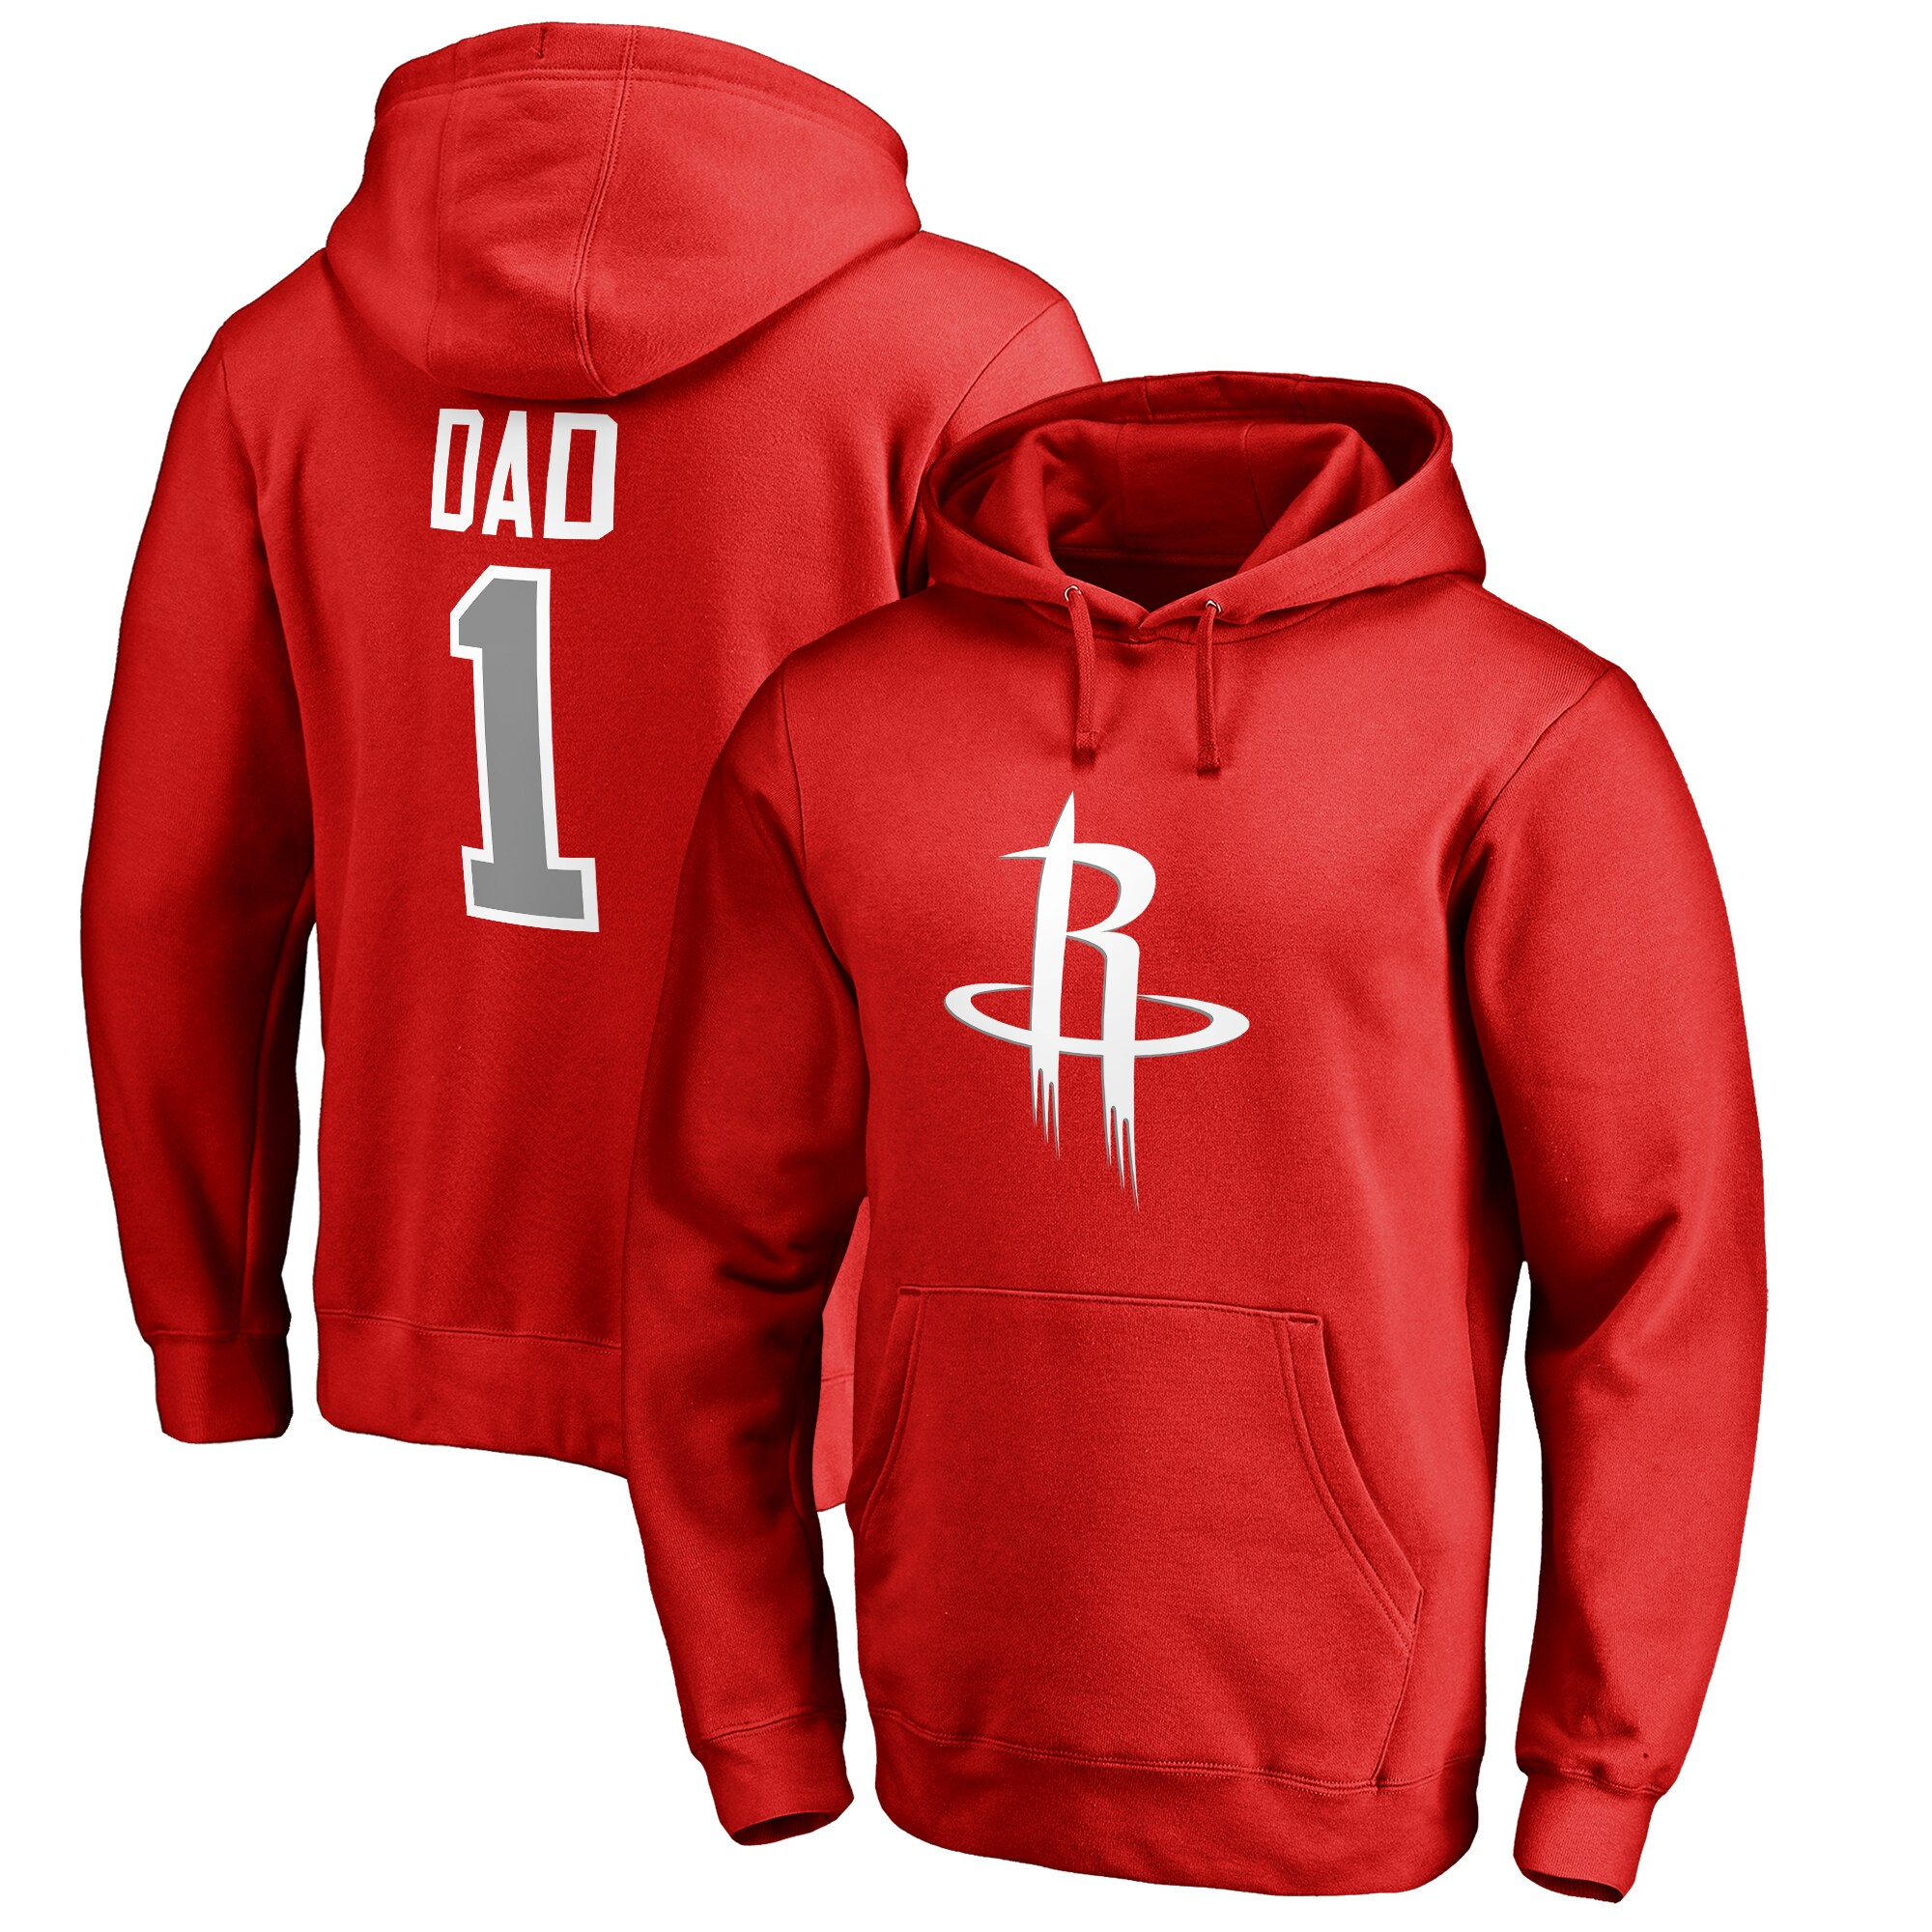 Houston Rockets Fanatics Branded Big & Tall #1 Dad Pullover Hoodie - Red